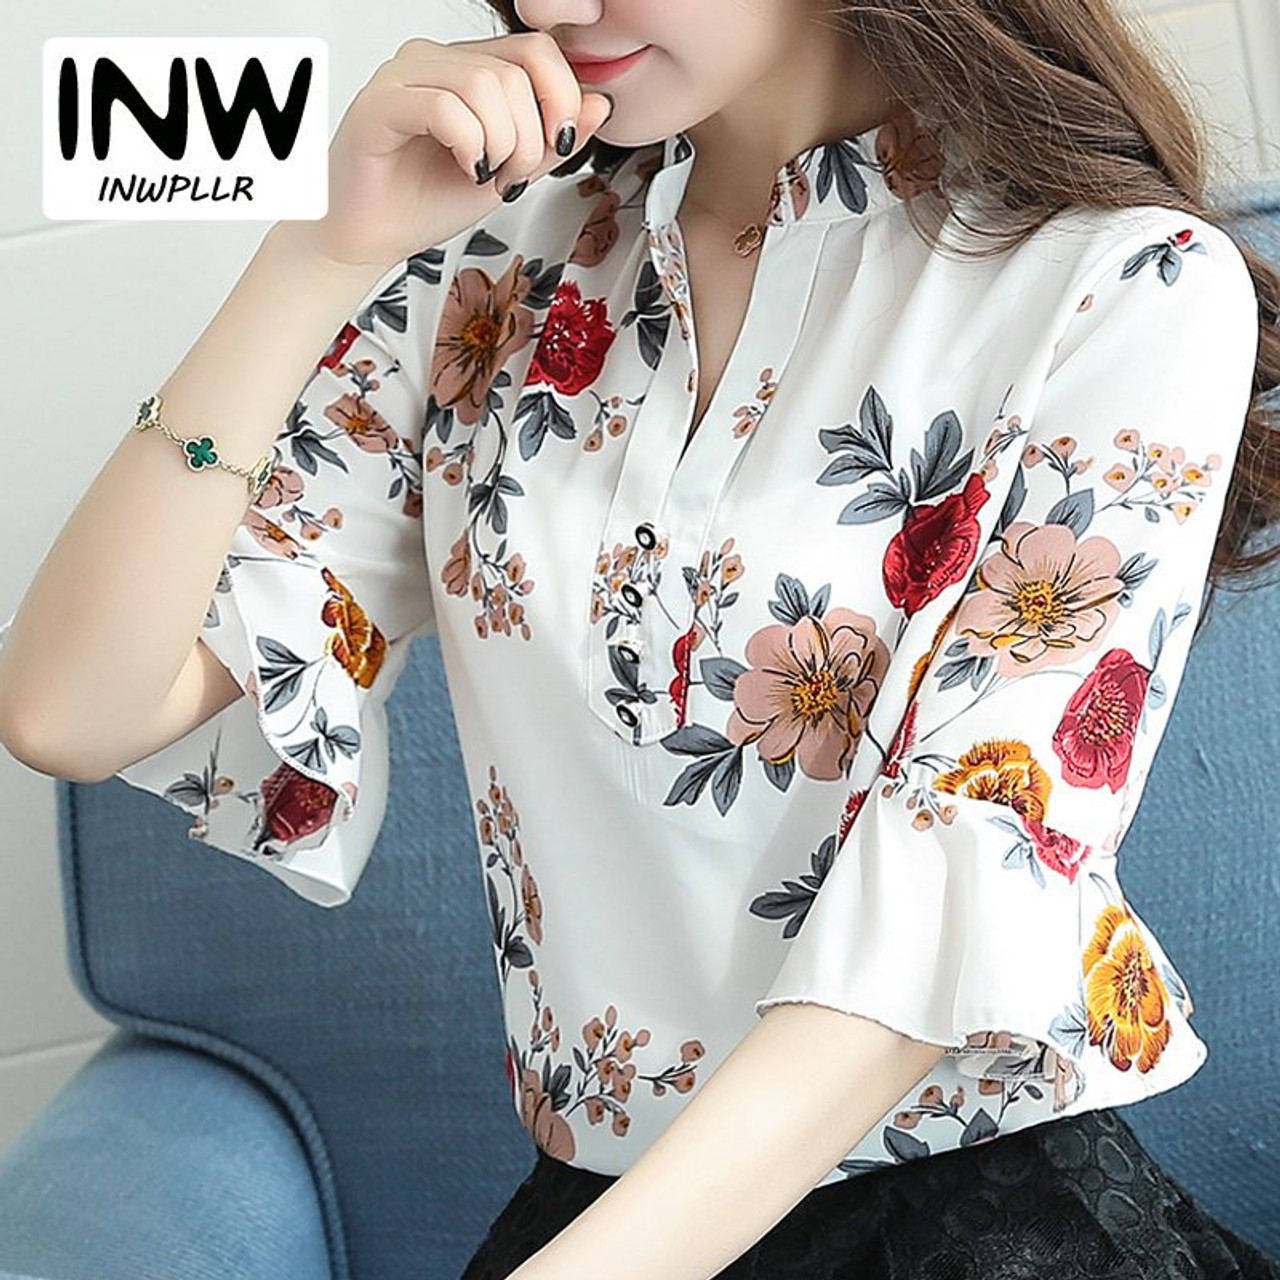 b2a629045669 Blusas Femininas 2018 New Fashion Chiffon Blouse Women Printed Blouses  Floral Print Shirts Summer Ladies Tops ...